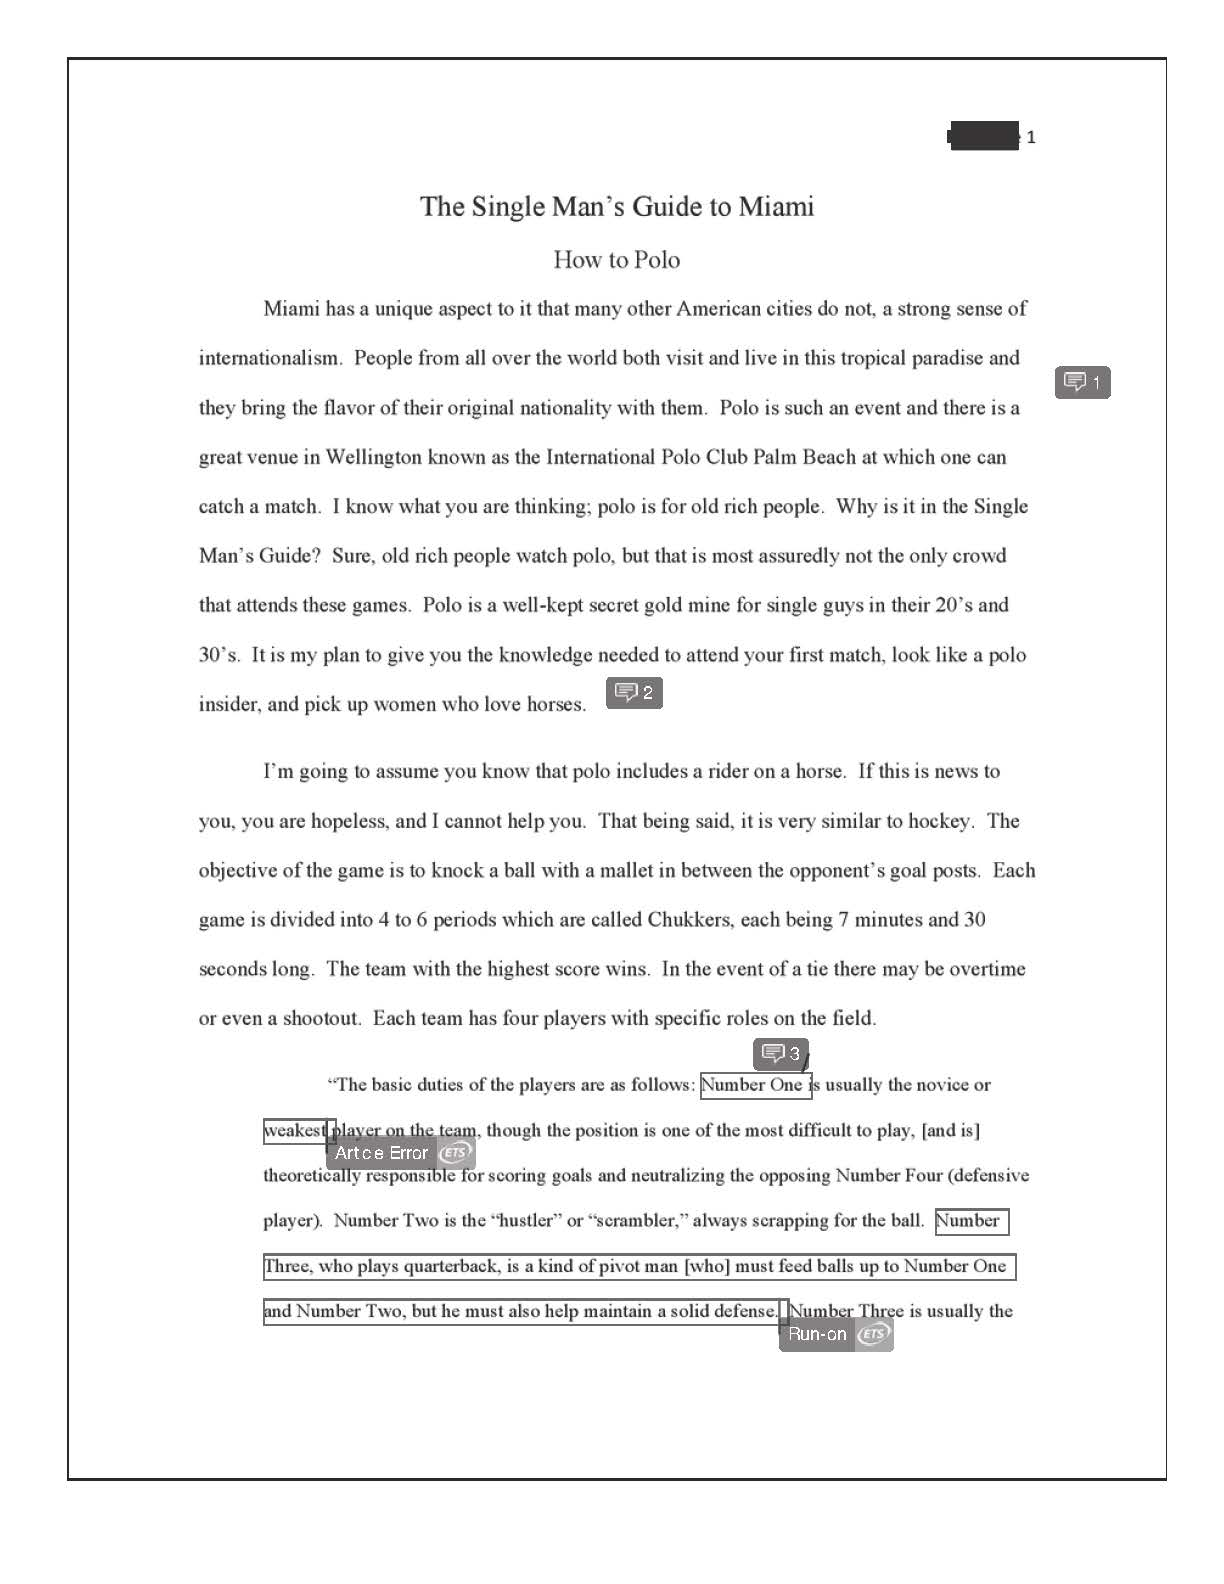 028 Essay Example Informative Final How To Polo Redacted Page 2 Unforgettable Outline 5th Grade Examples Full